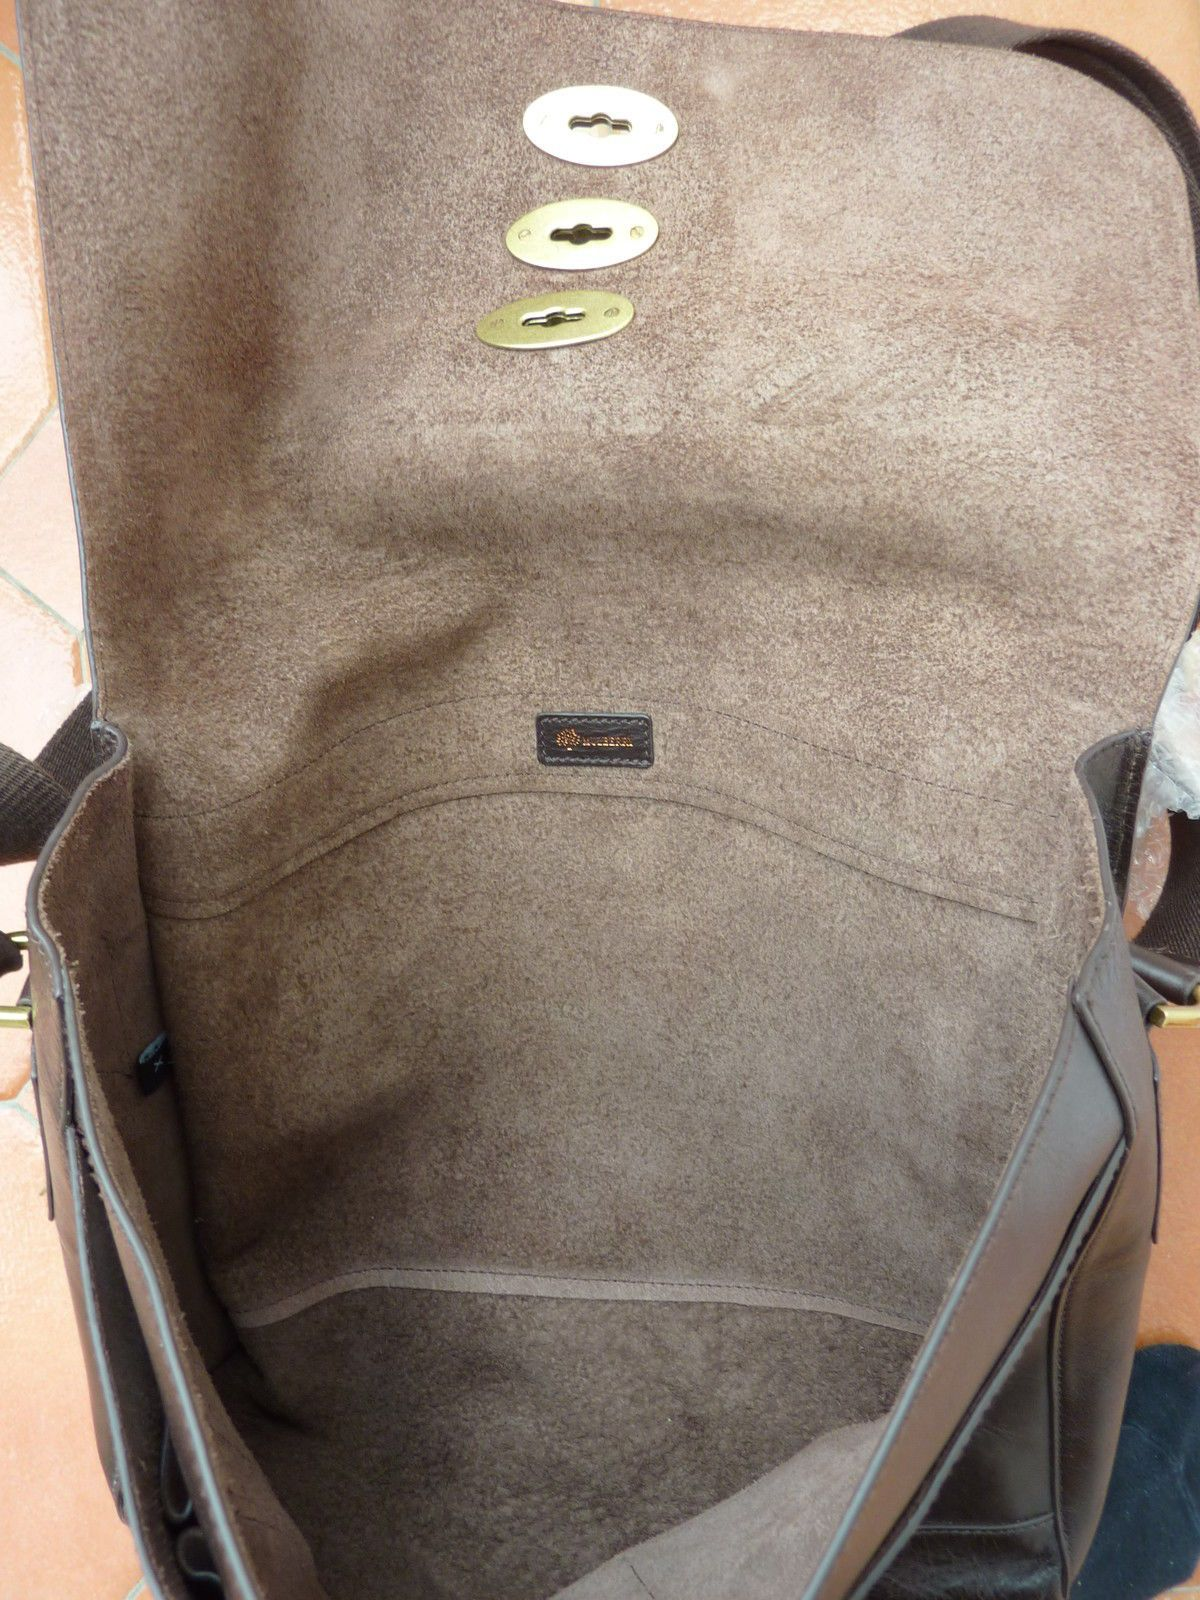 d83cc4205c Mulberry - Brynmore Messenger Bag - £795 - Brown Leather - triple lock in  Clothes